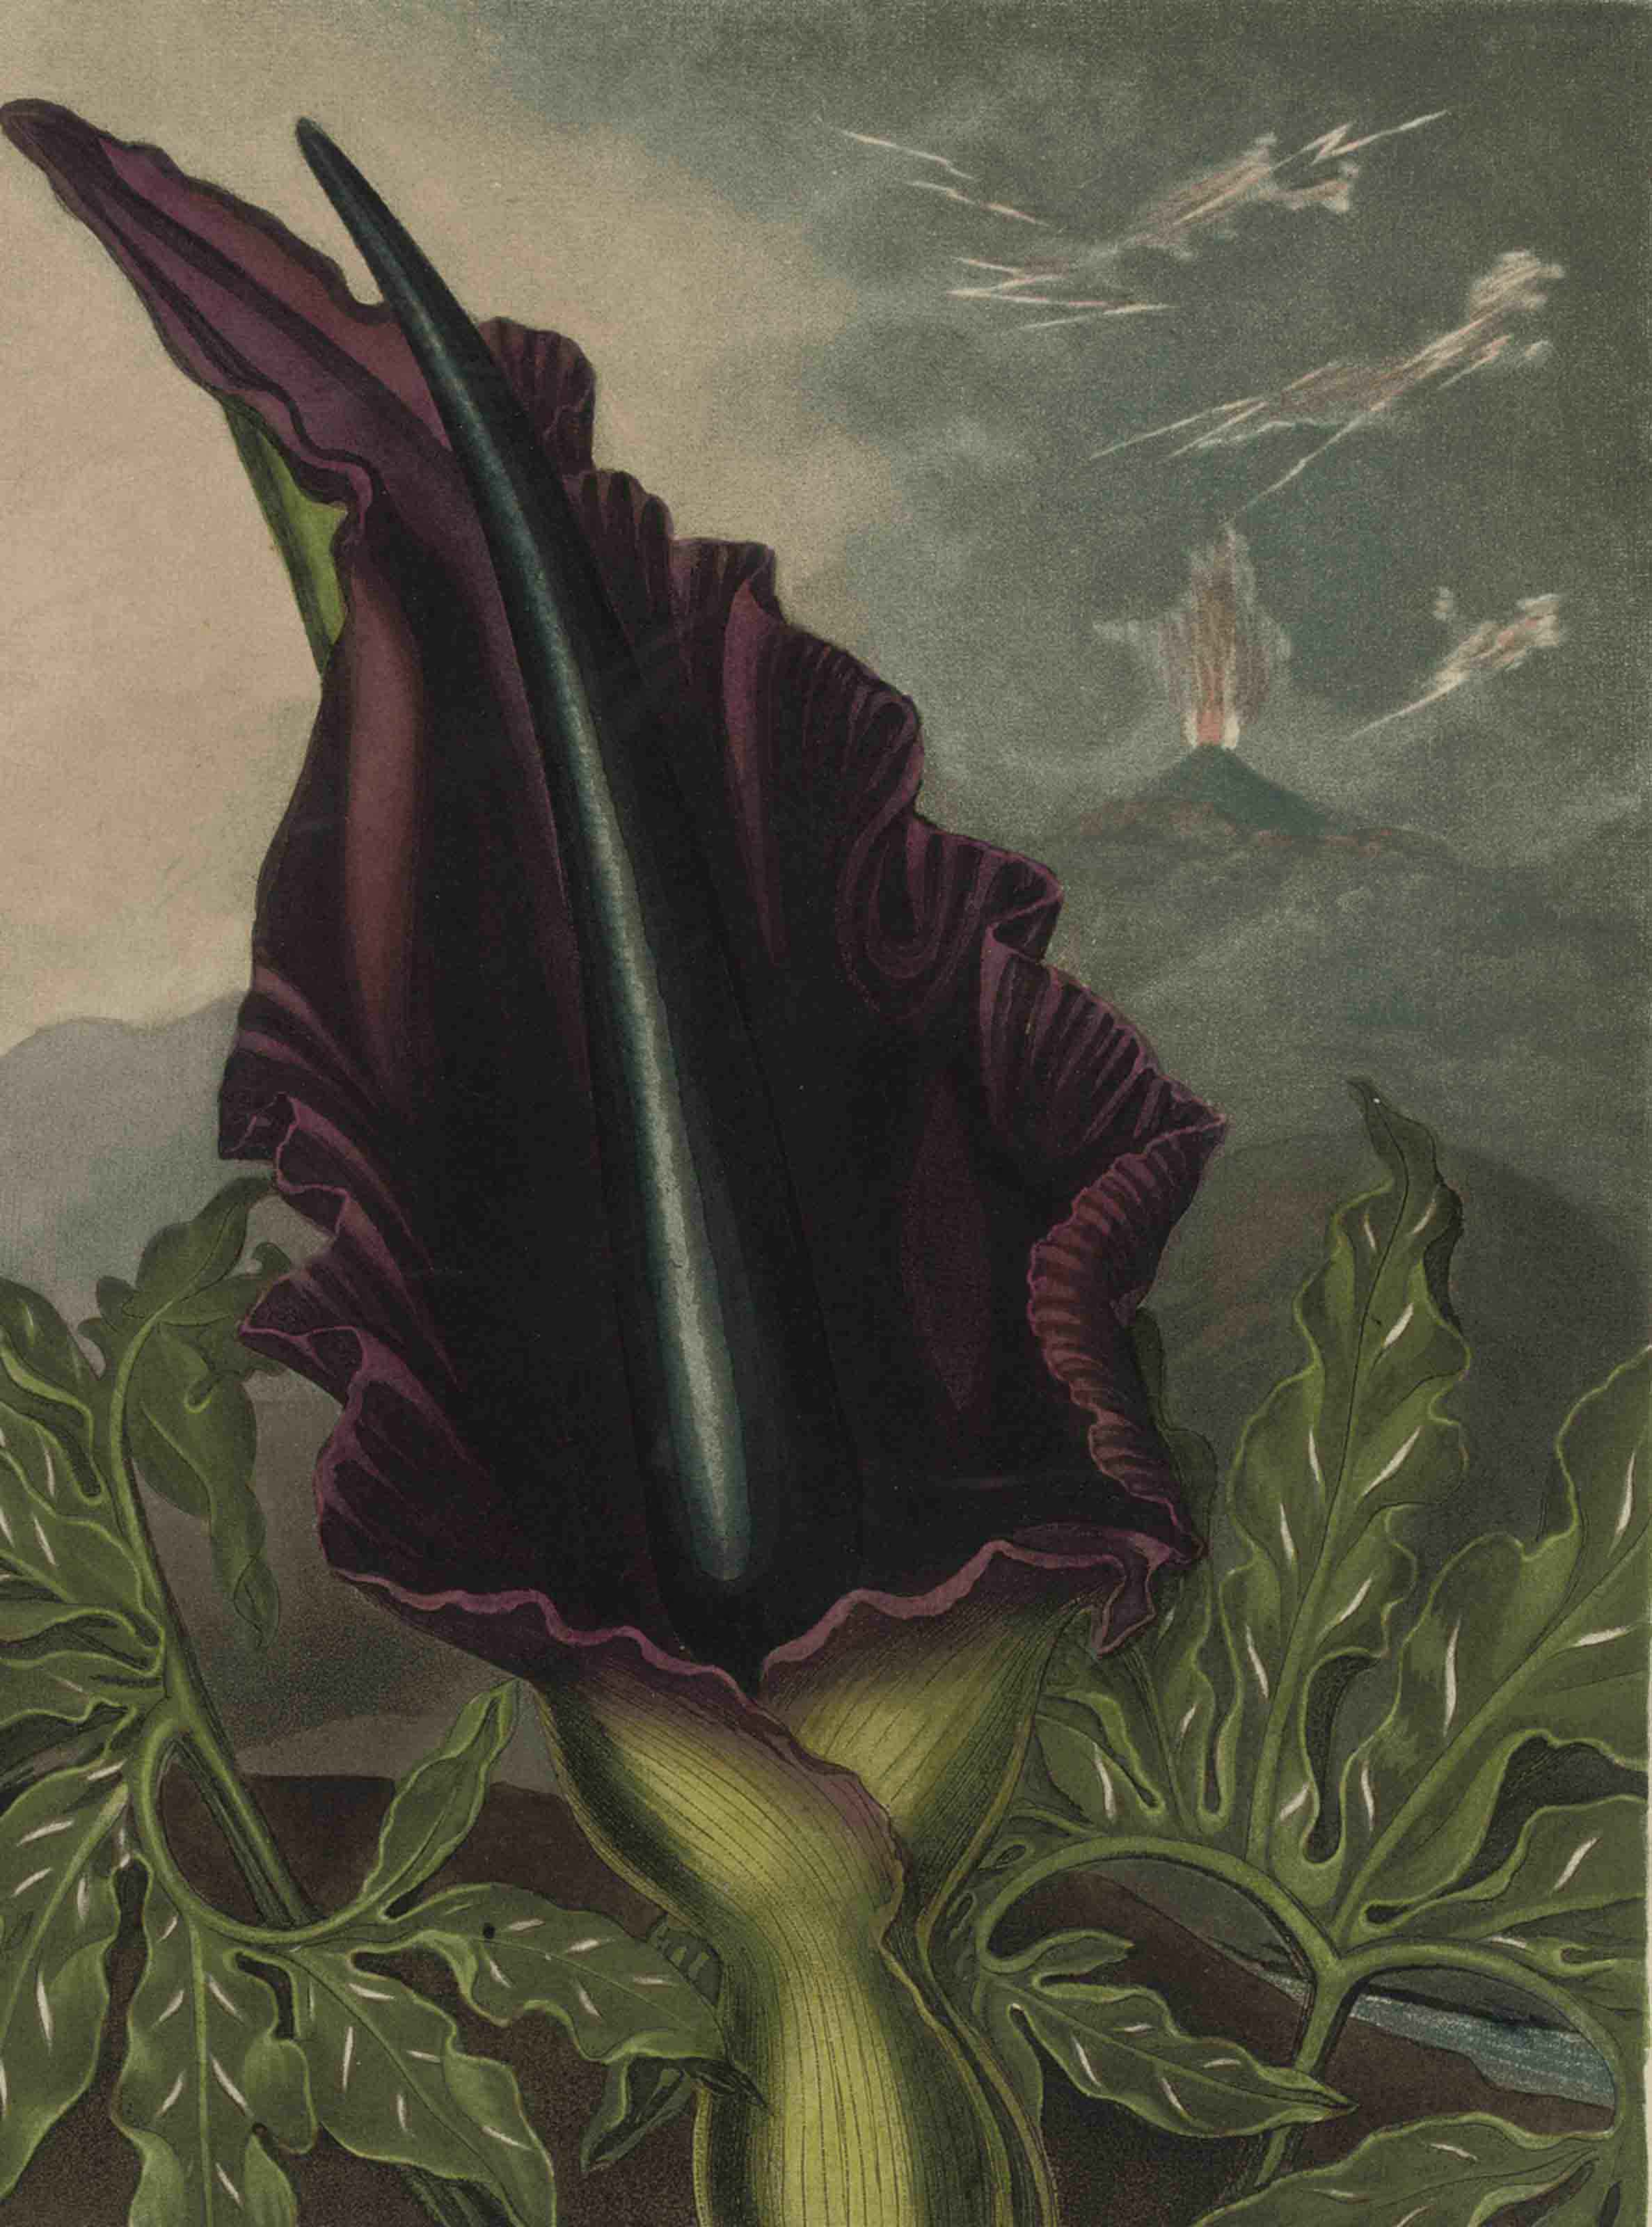 THORNTON, Robert John (1768-1837). Temple of Flora, or Garden of the Botanist poet, Painter and Philosopher. London: for the author 1812. 4° (377 x 305mm). Engraved title on 2 leaves, 29 coloured engraved botanical plates, finished by hand, including frontispiece, and 2 allegorical plates. (Occasional light browning, some waterstaining and soiling at start.) Contemporary red morocco gilt, marbled endpapers (rebacked, preserving most of old spine, edges restored, covers soiled and stained). Provenance: William Bennett (handwritten bookplate) -- Dulau and Co. (booksellers' label) -- Richard and Margot Walker (bookplate).